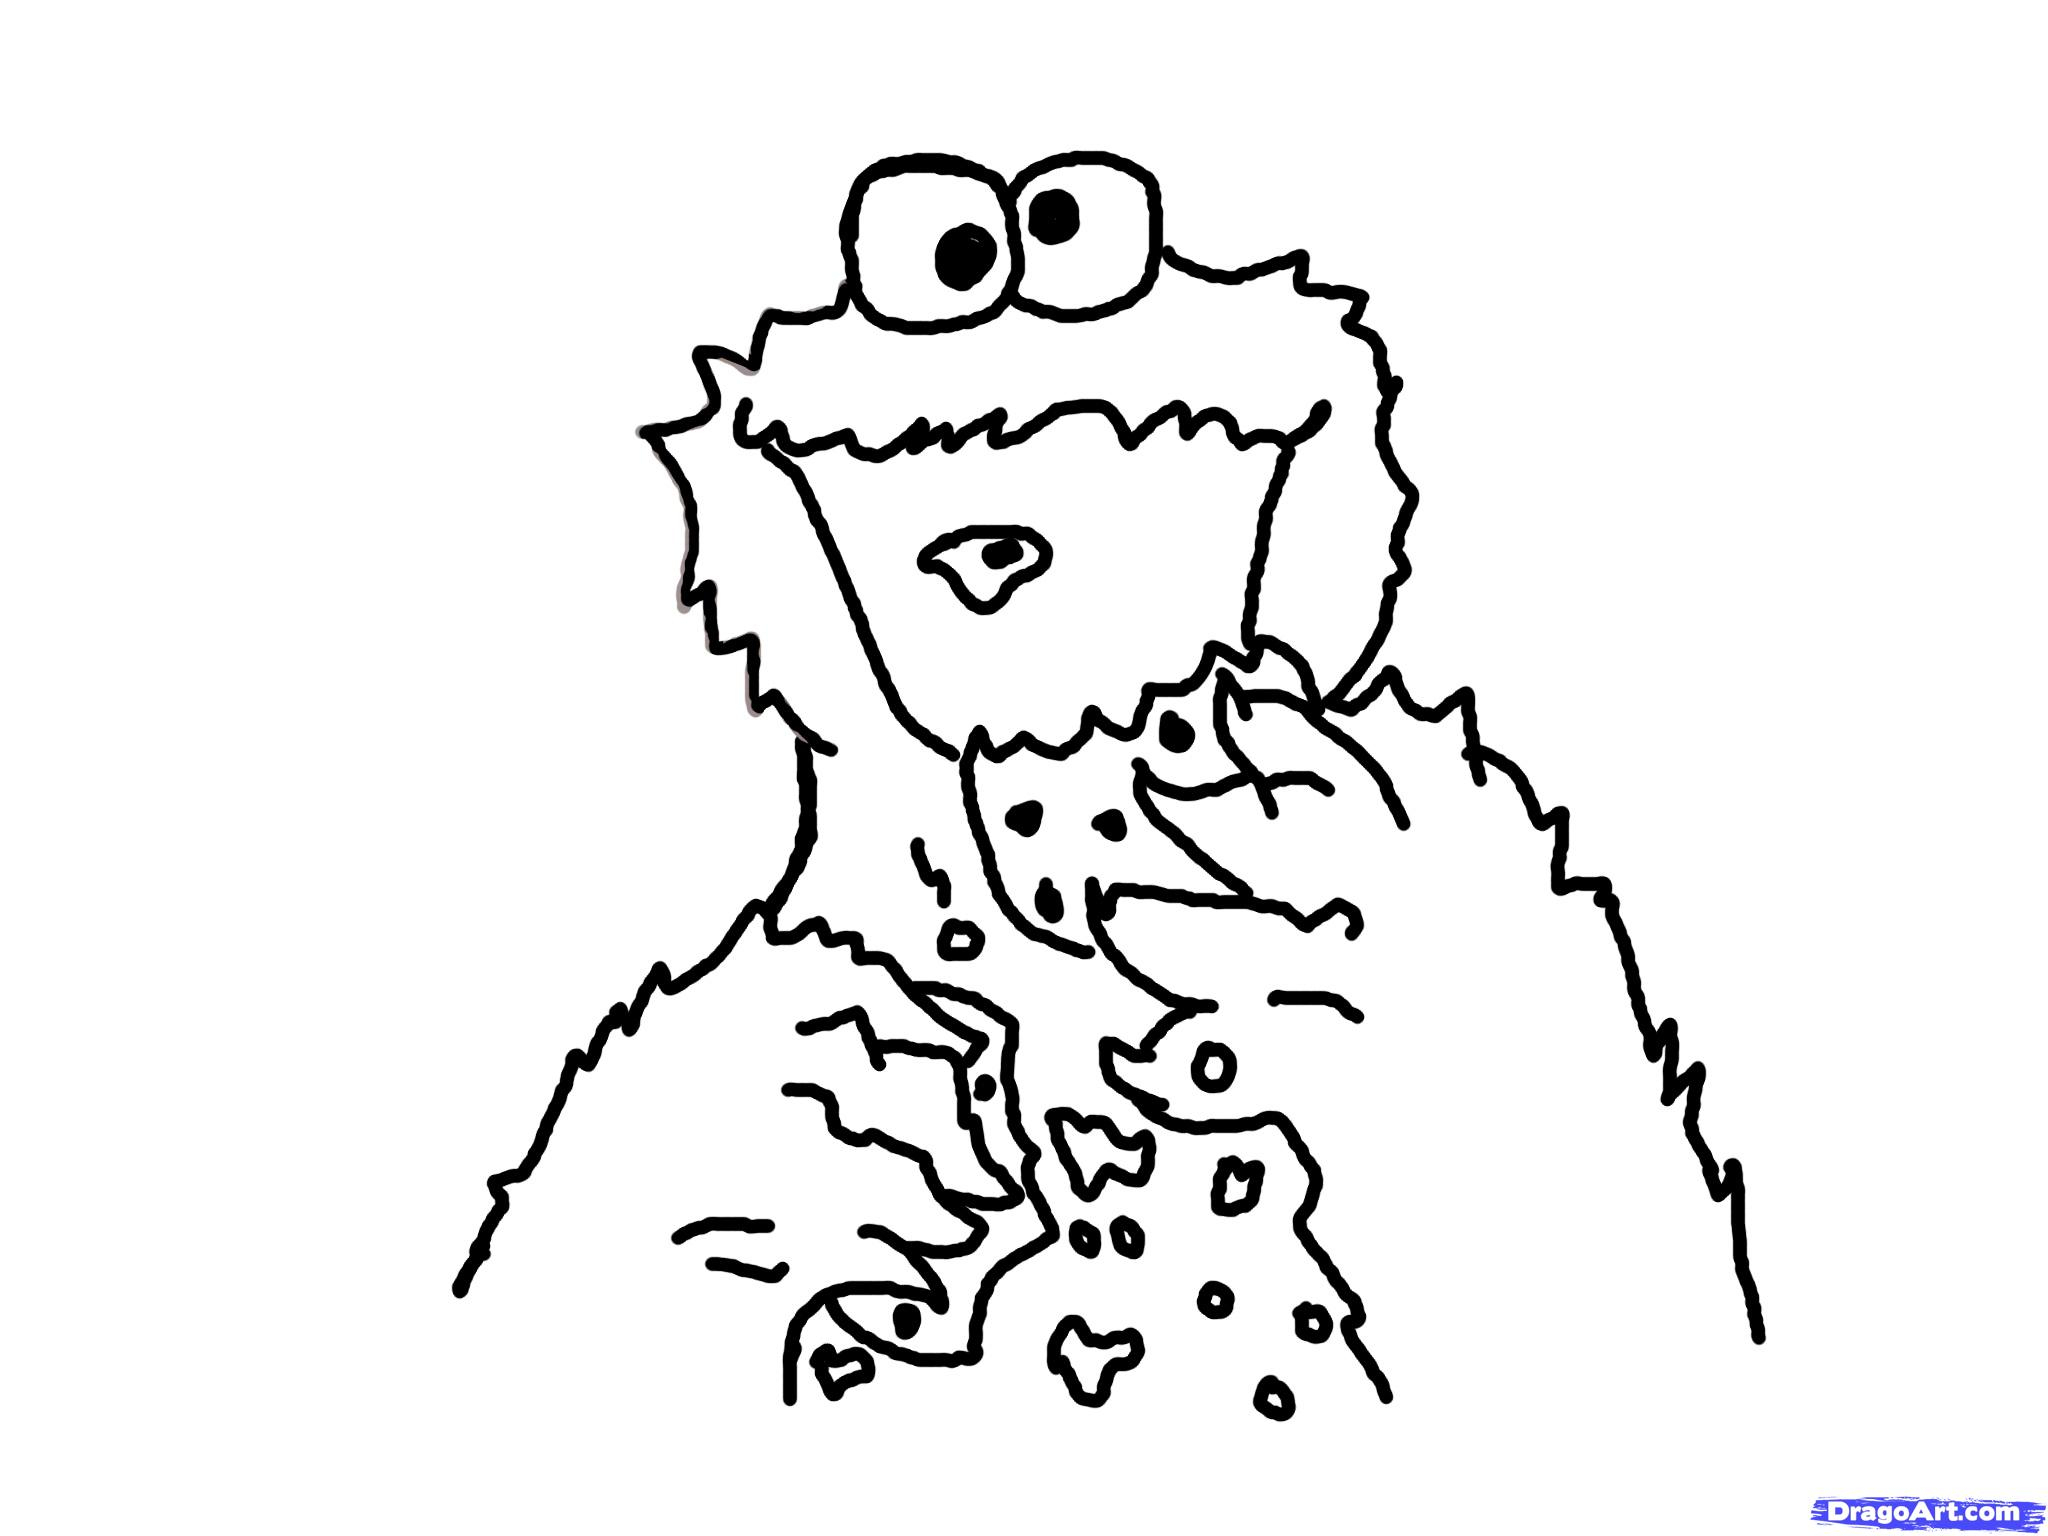 2048x1536 Cookie Monster Drawing How To Draw Cookie Monster, Stepstep, Pbs